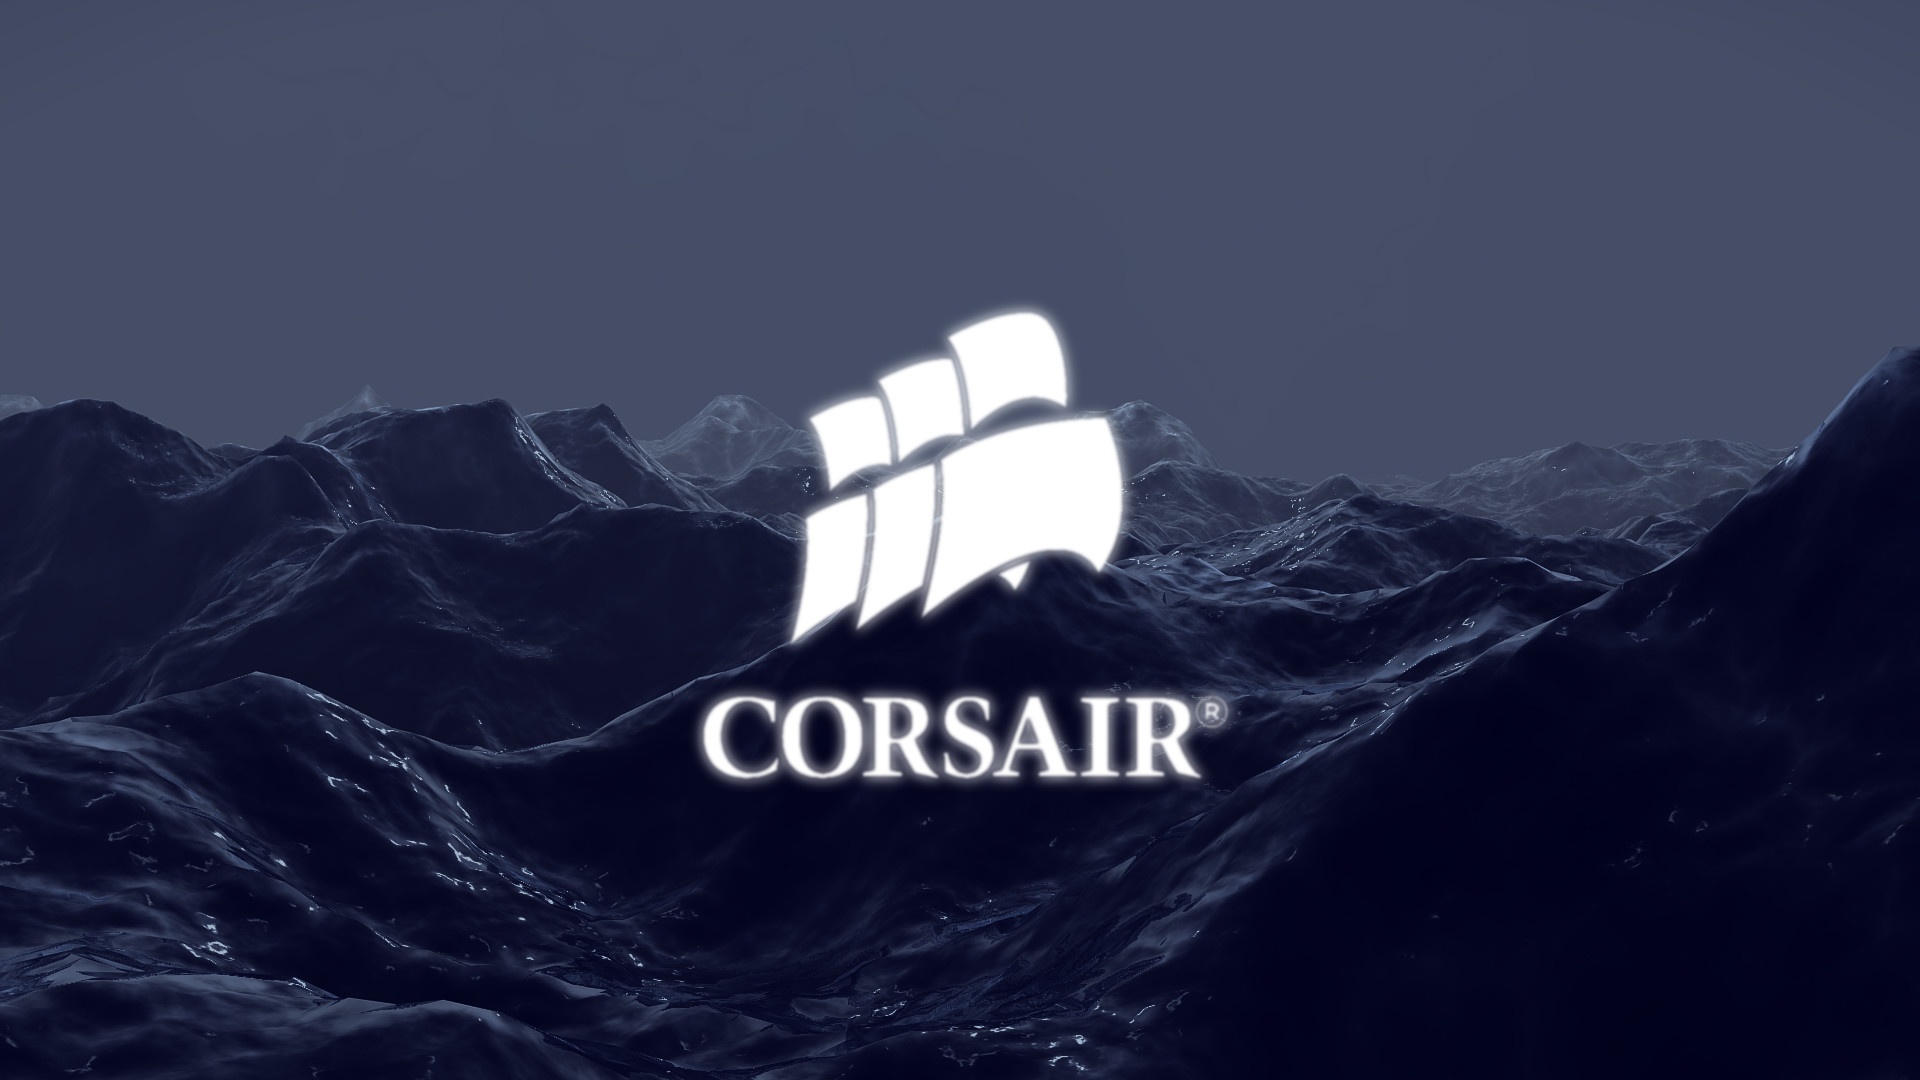 1920x1080 Corsair Sea Wallpaper by Tman5293